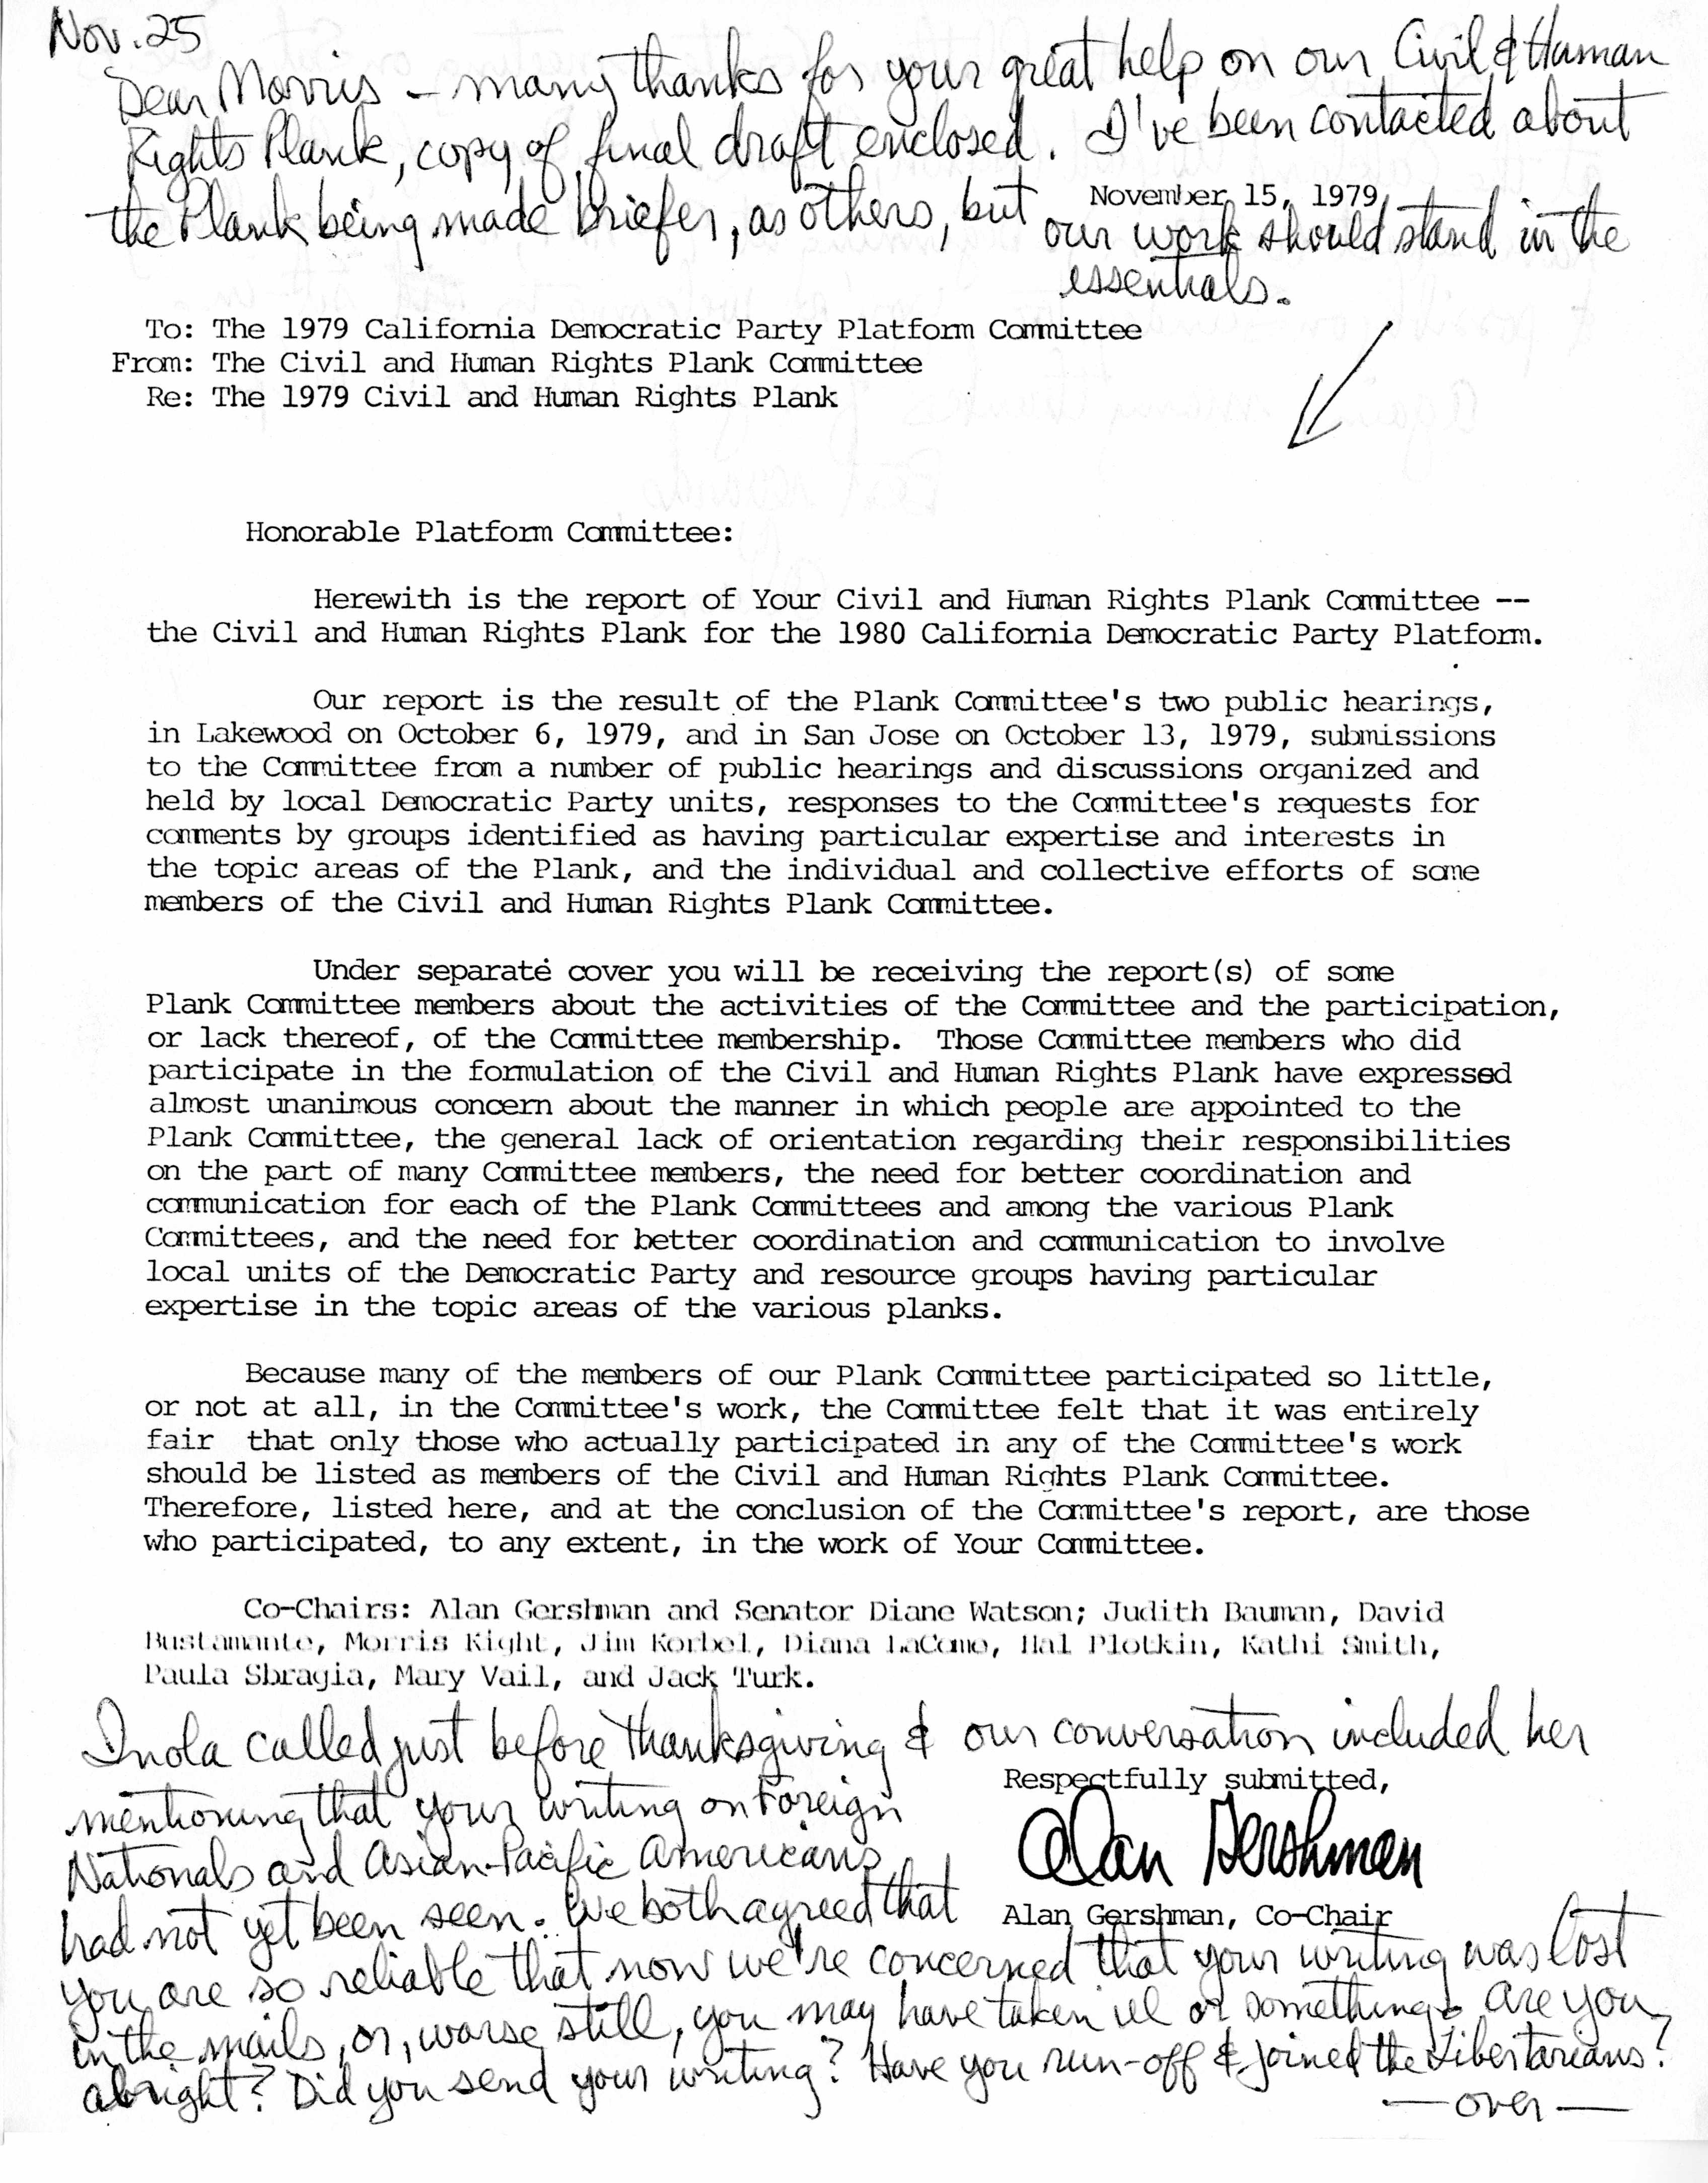 Letter From The Civil And Human Rights Plnk Committee To The